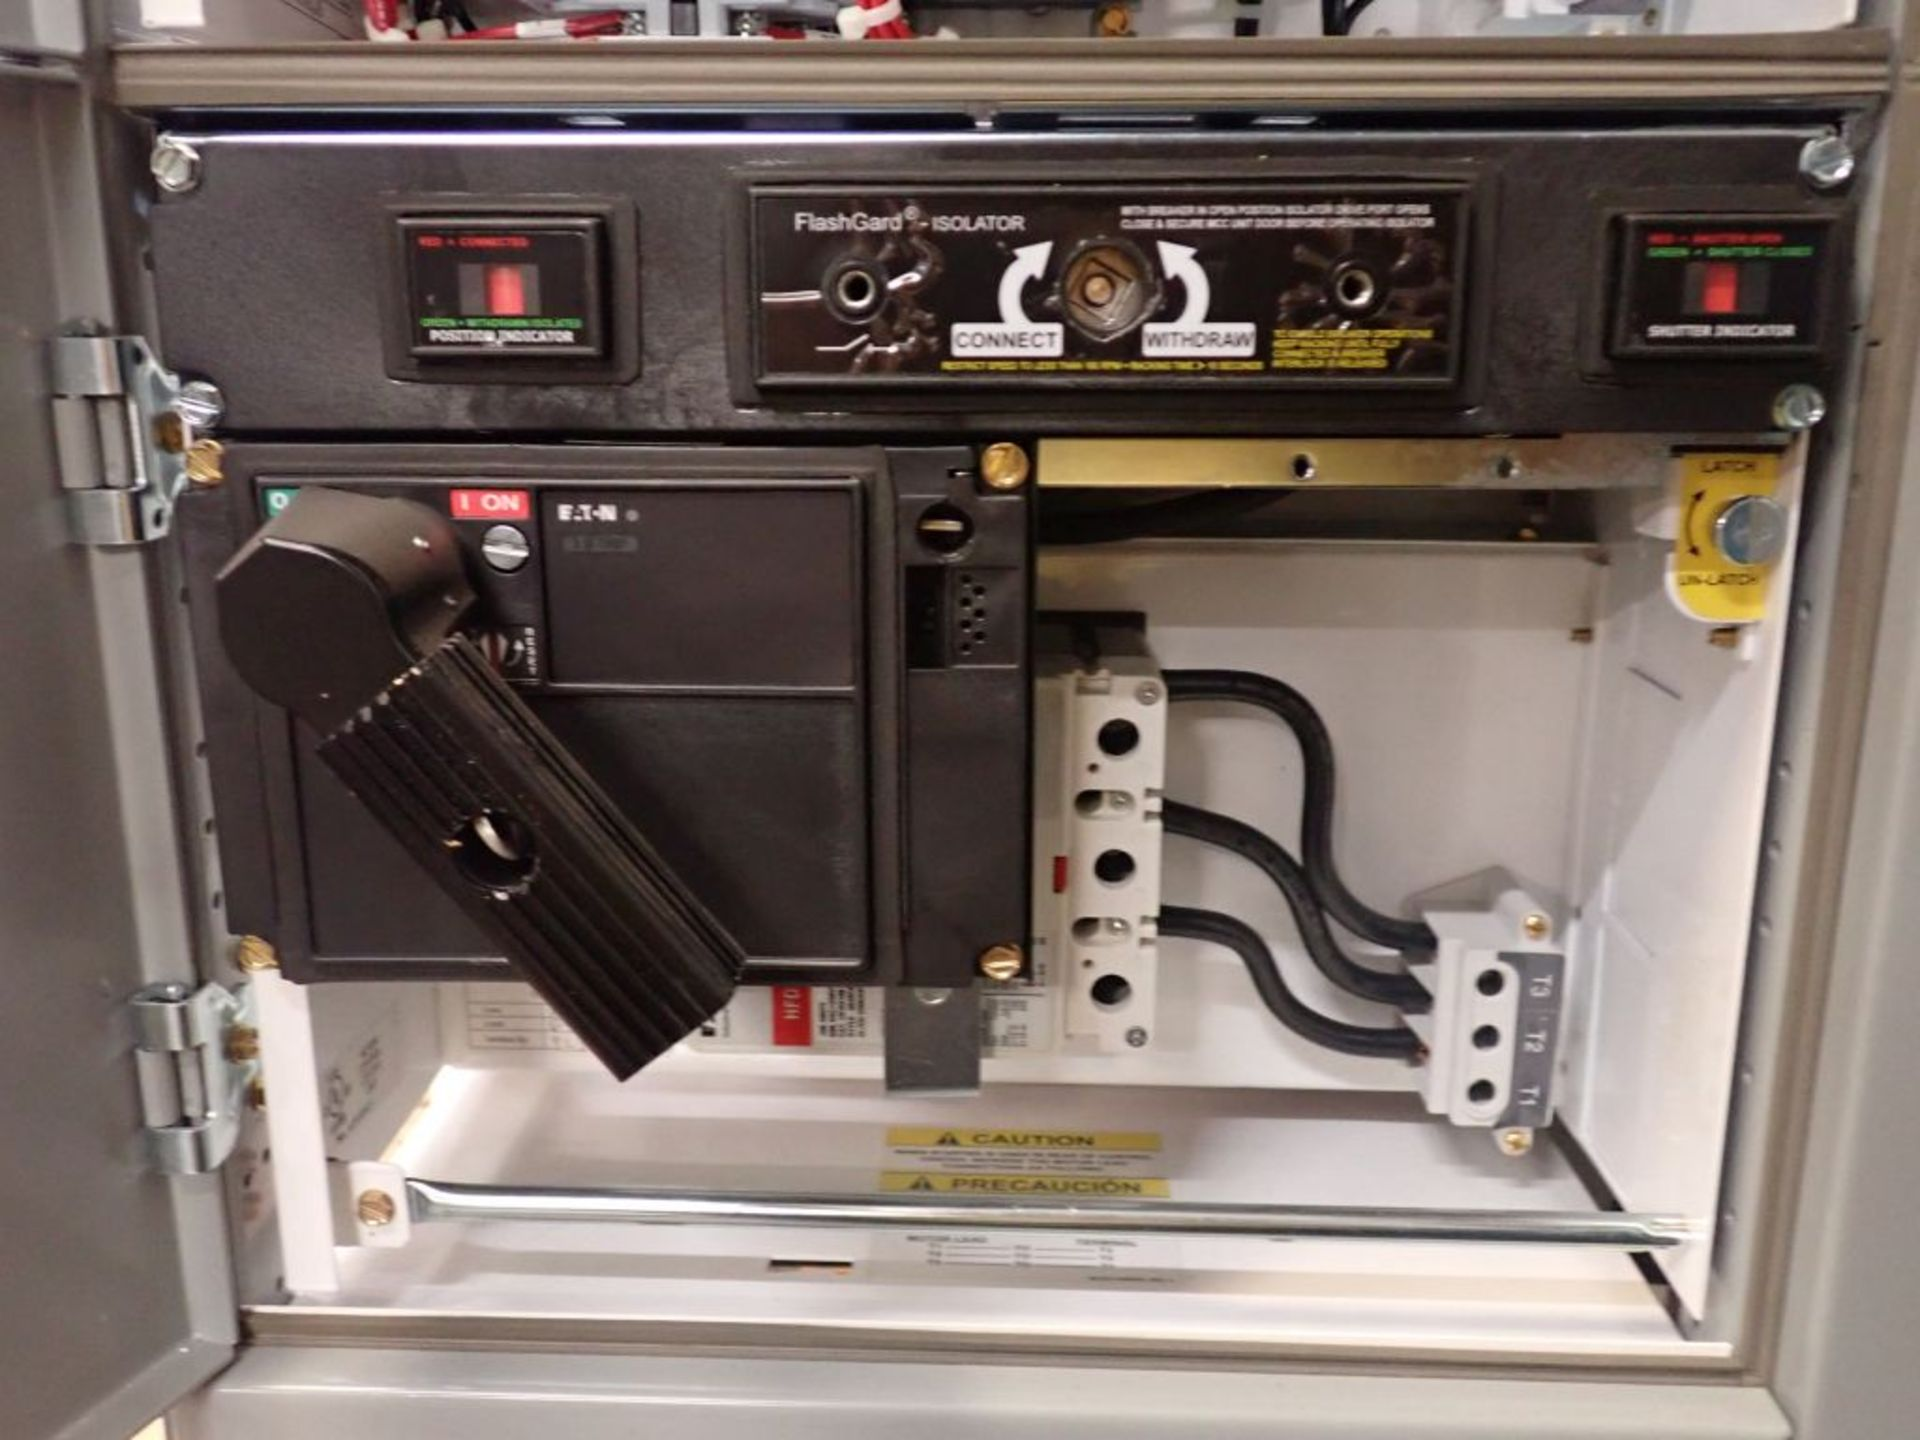 Eaton Freedom 2100 Series Motor Control Center | (2) F206-7A-10HP; (3) F206-15A-10HP; (1) FDRB-100A; - Image 62 of 87